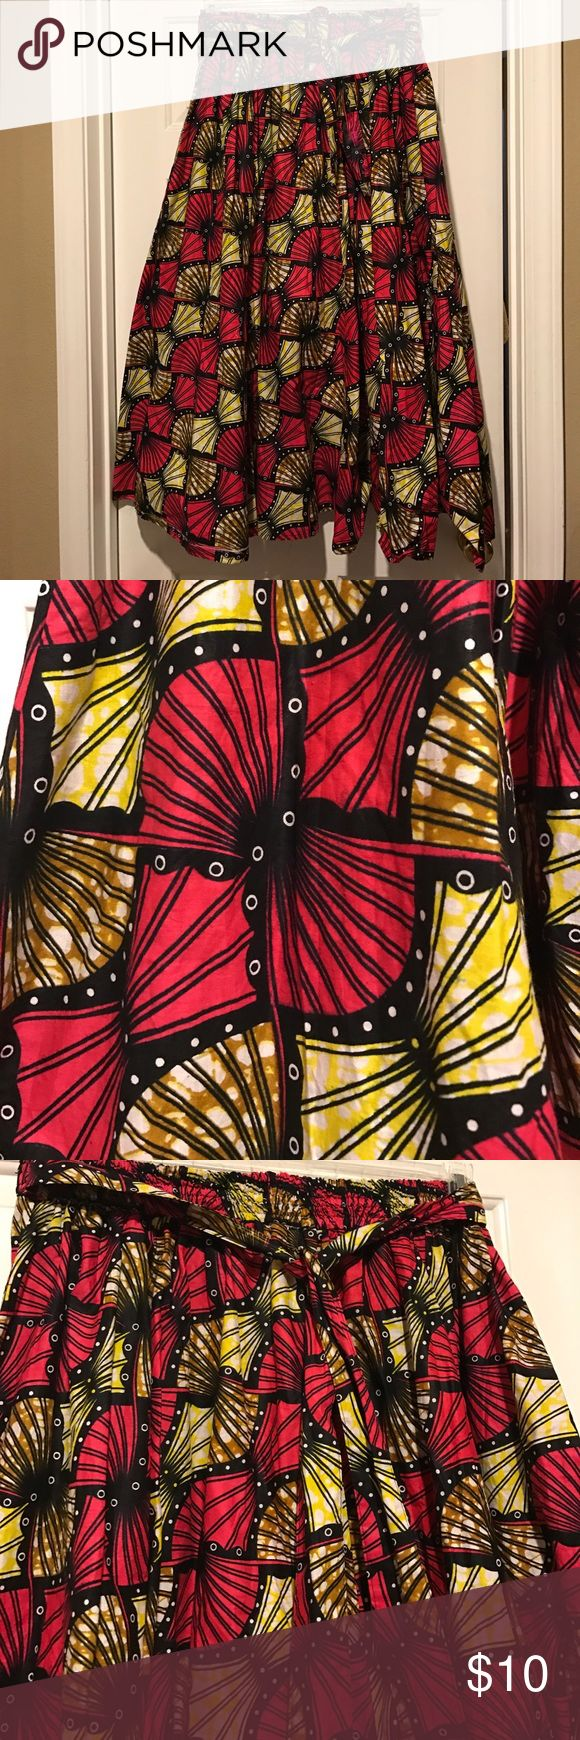 African Print cotton maxi skirt (nwt) This African print maci skirt will have all eyes on you this summer. Elastic waistband band, pockets and waist tie. It's free size. I am a true size 18 and it fits fine. Skirts Maxi